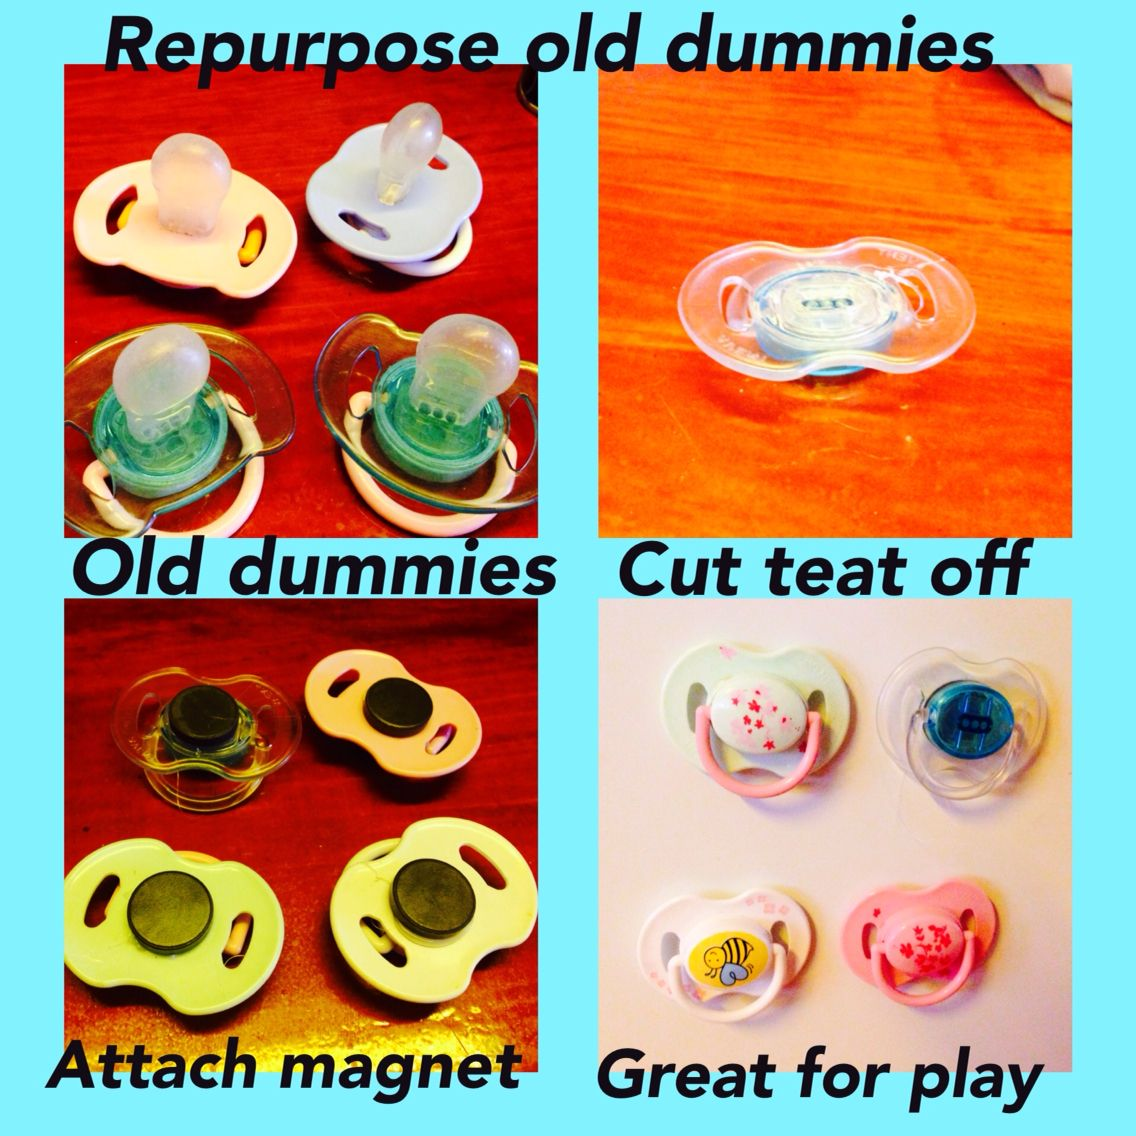 Repurpose old dummiespacifiers easy cheap and fun for the little repurpose old dummiespacifiers easy cheap and fun for the little ones to play ccuart Choice Image